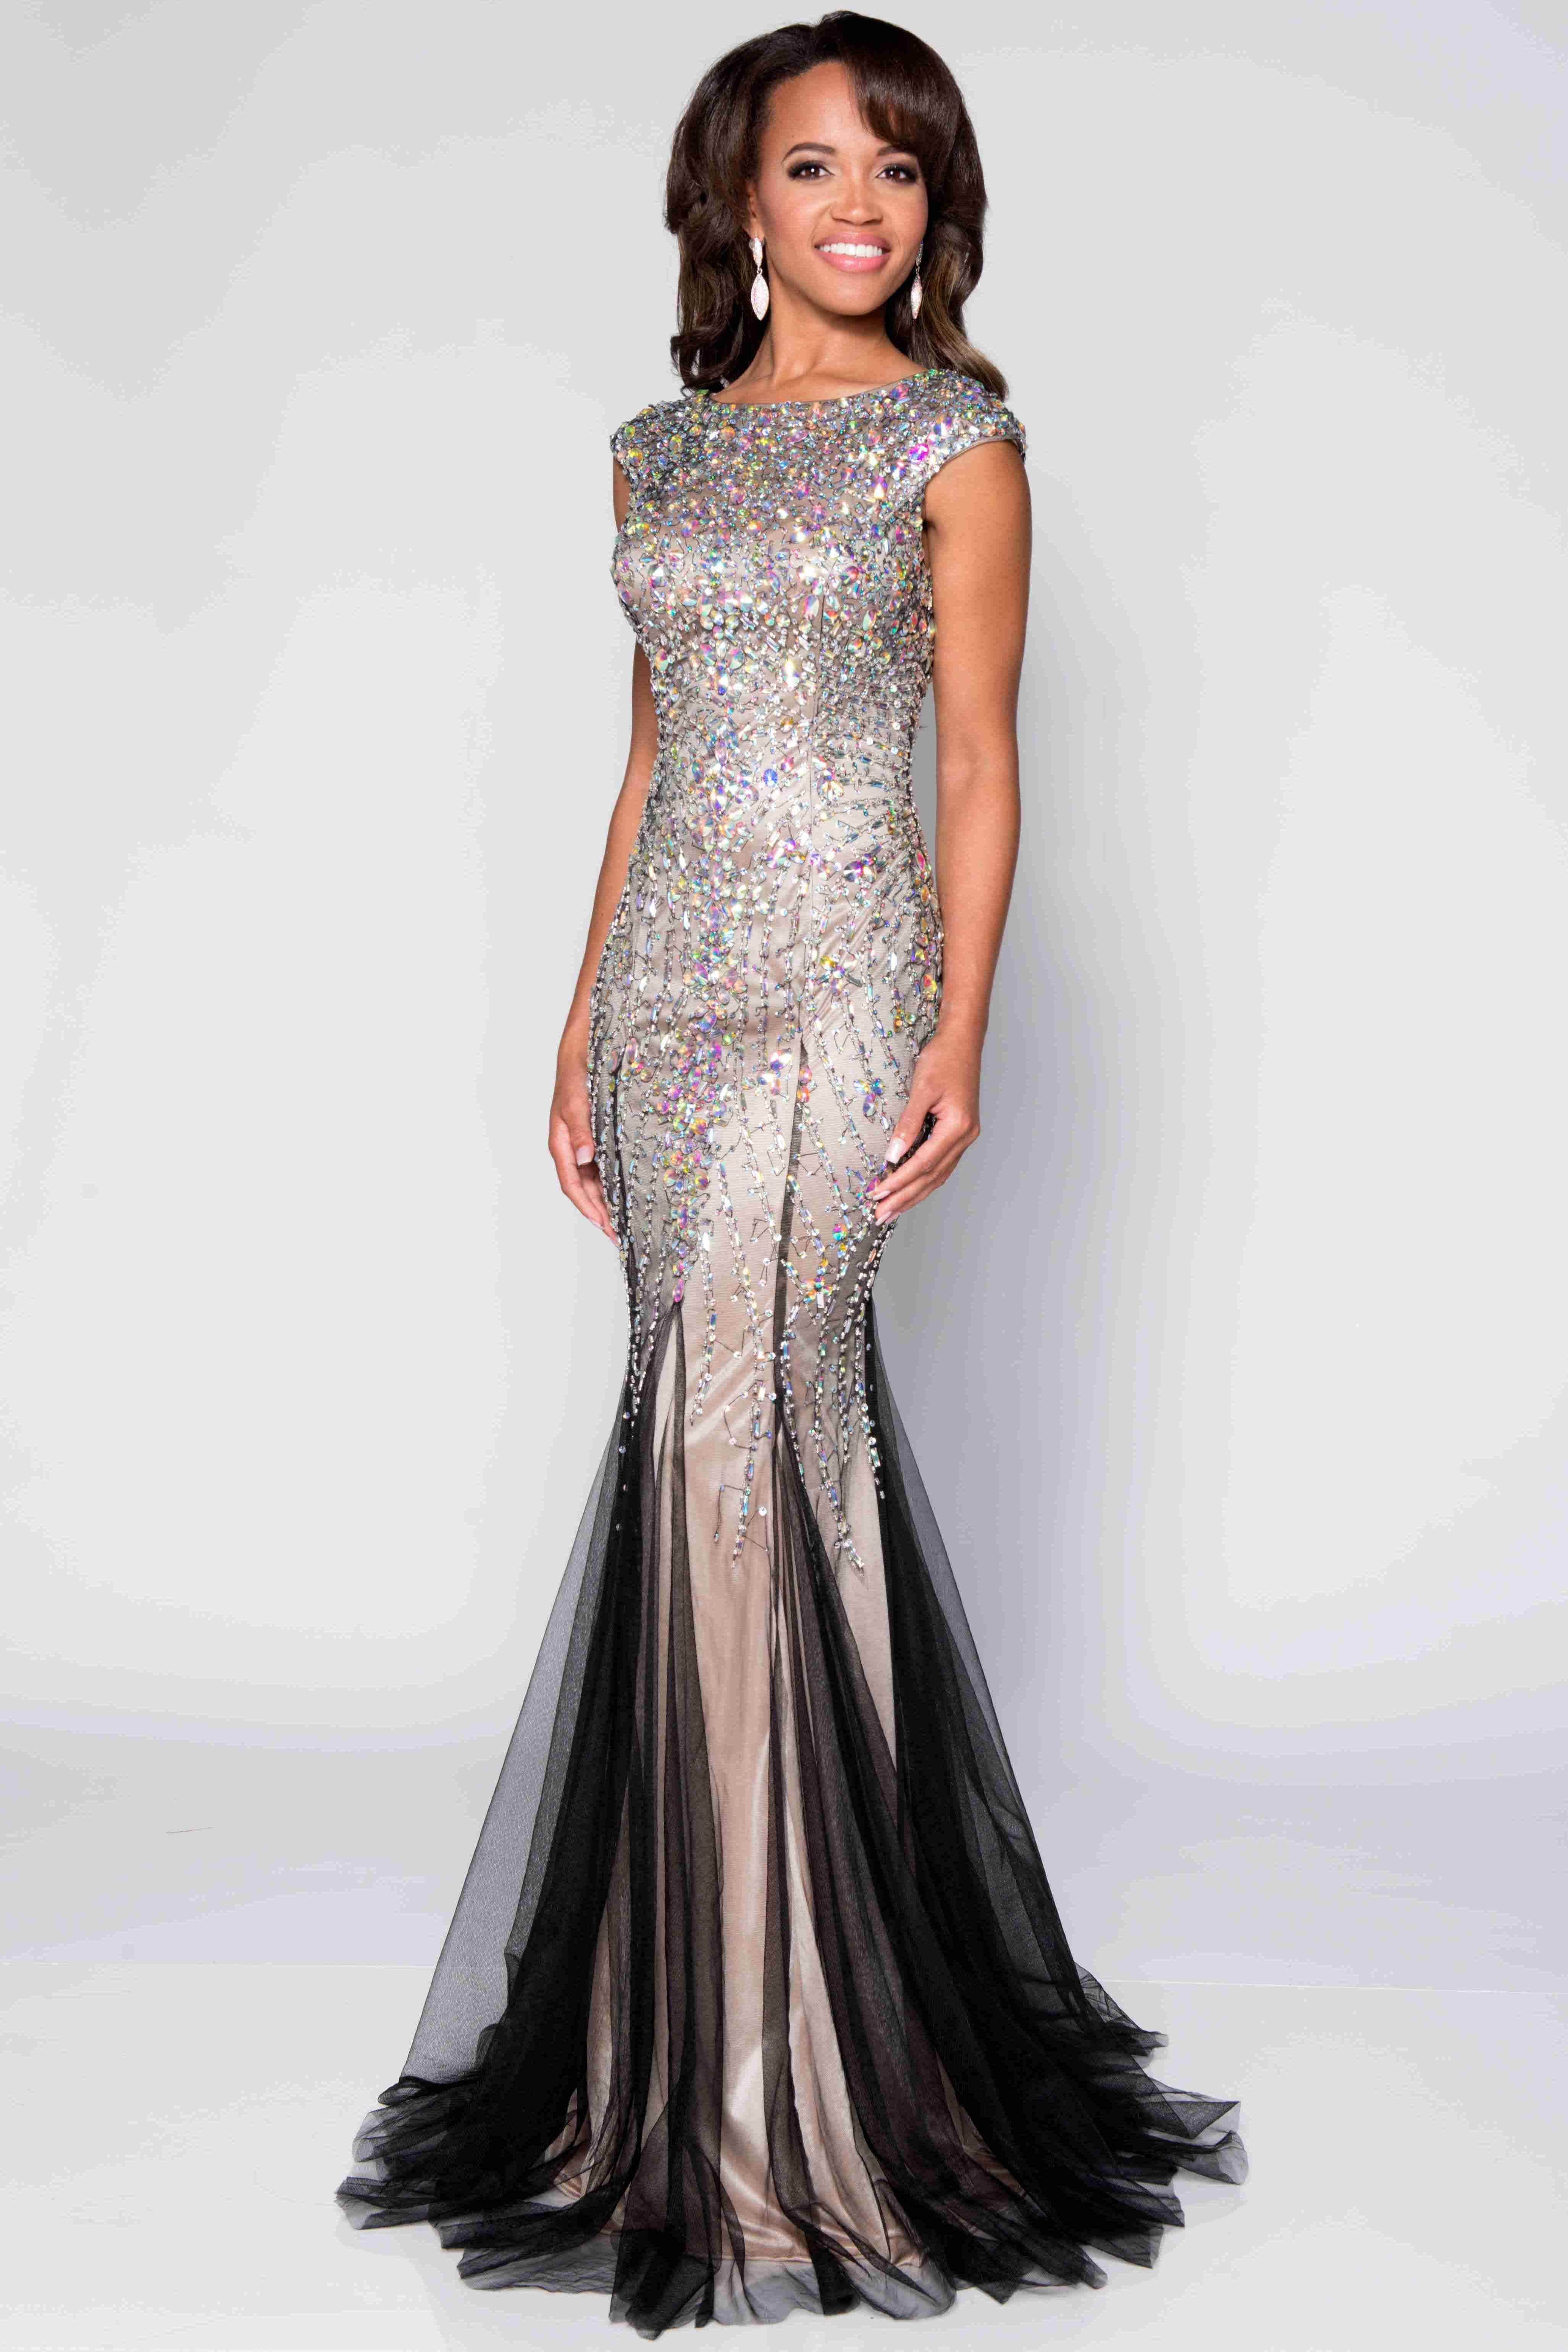 157.49 - Sequined Mermaid Prom Dress Free Shipping   Free Custom Made! Buy  cheap prom dresses 7eafe76a66ae